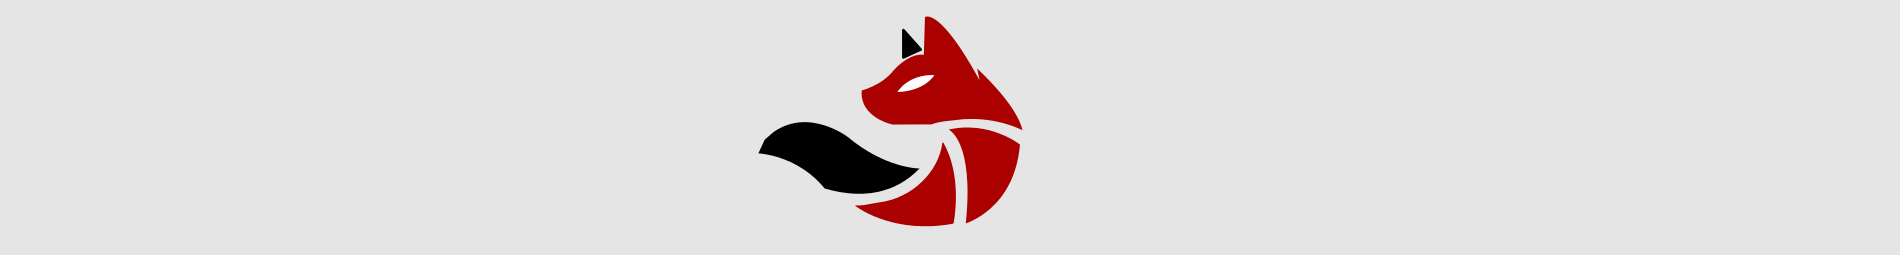 Walletfox.com